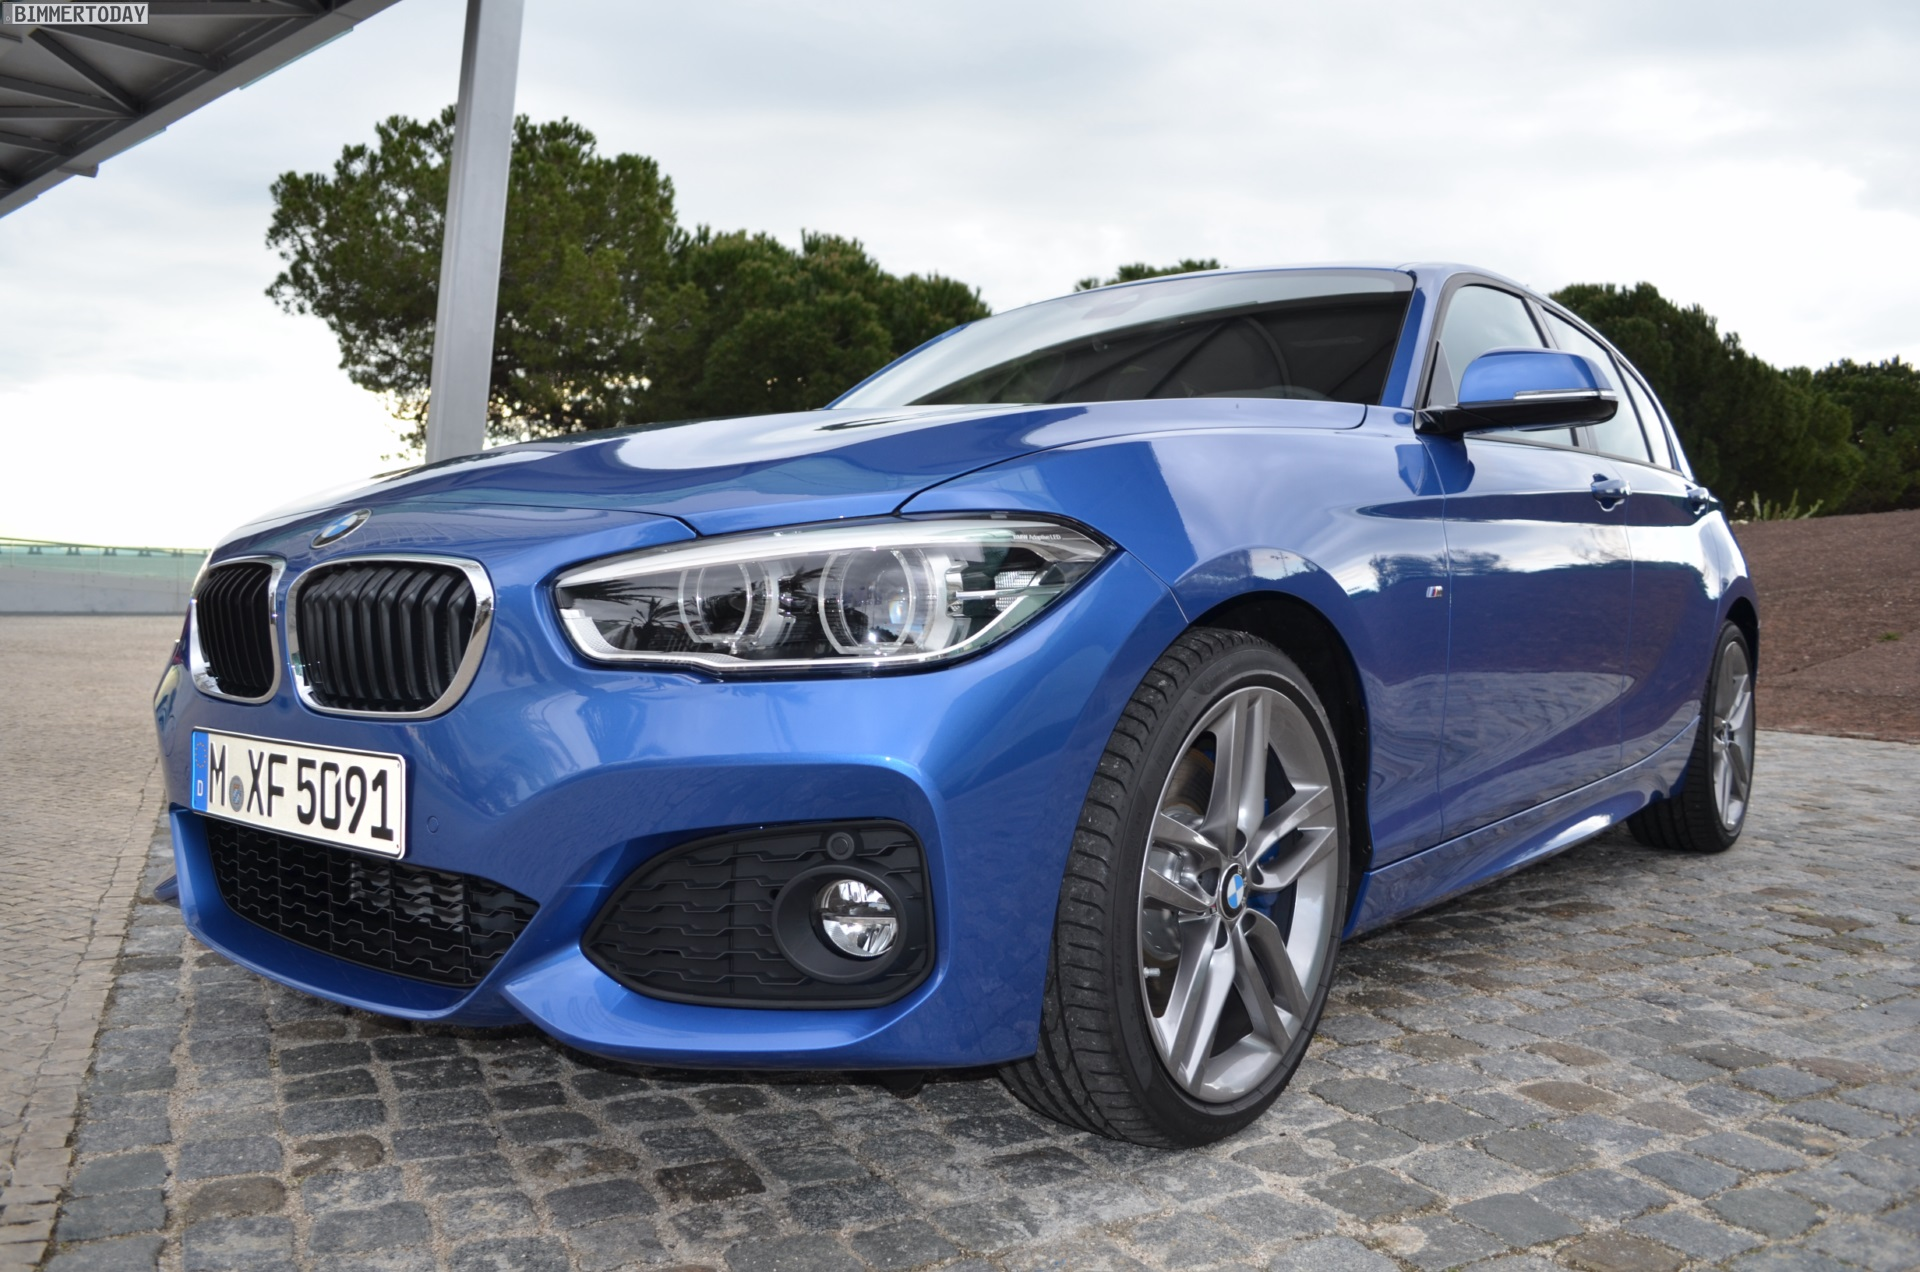 2015 Bmw 1 Series Facelift With M Sport Package In Estoril Blue